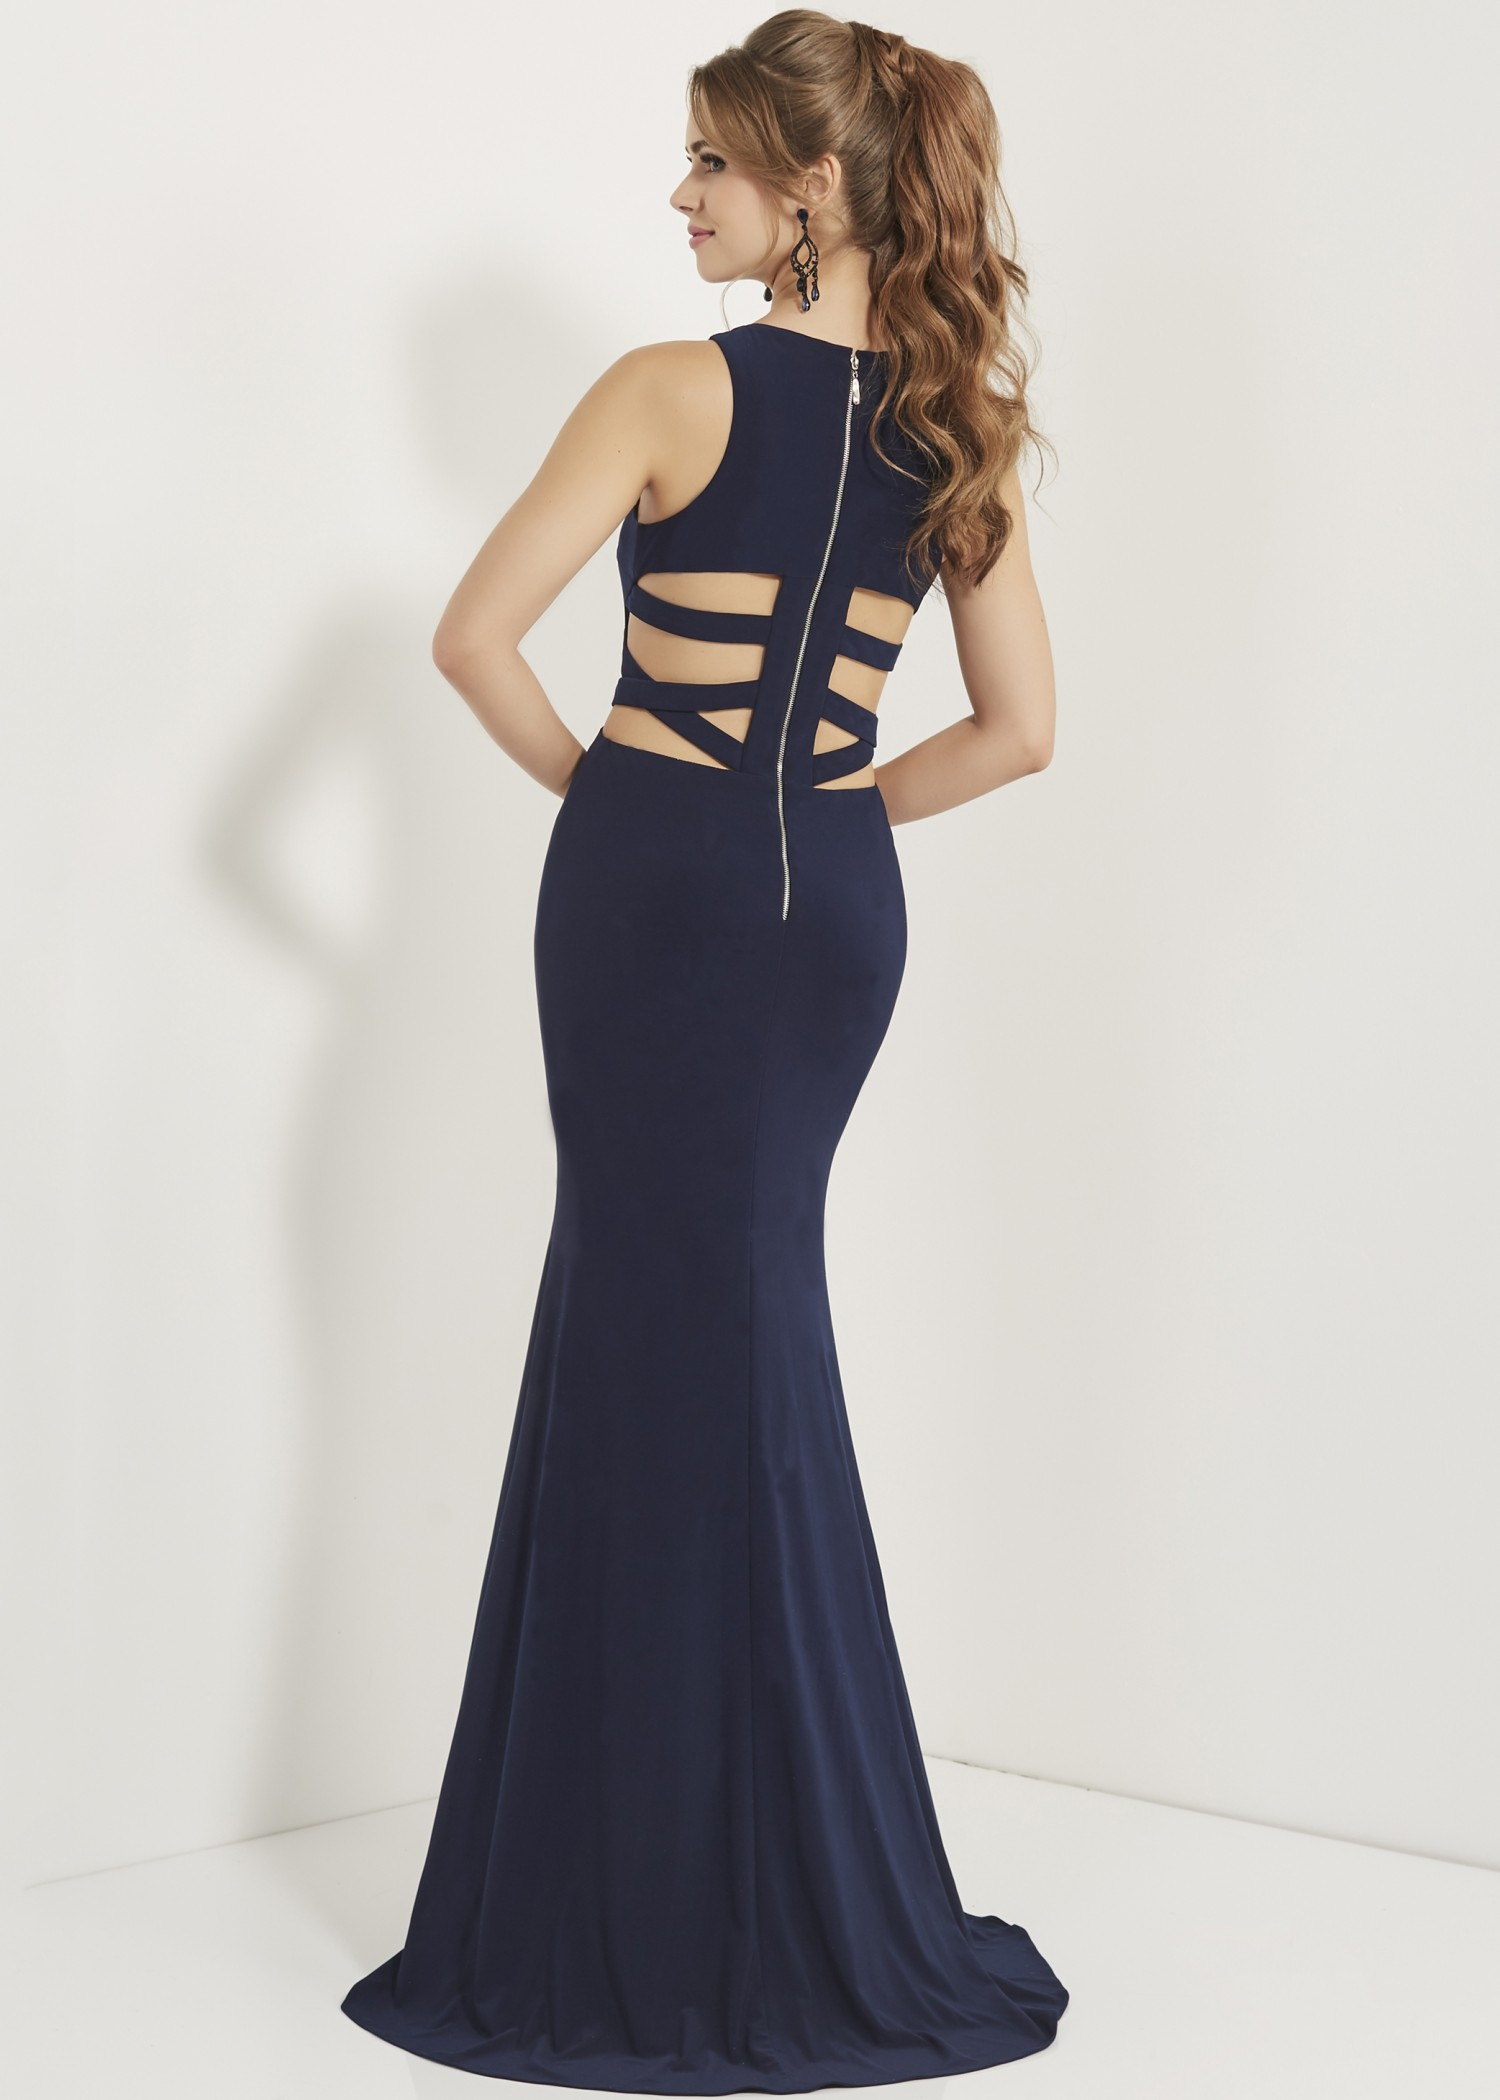 Studio 17 12740 High Neck Jersey Gown with Cutouts